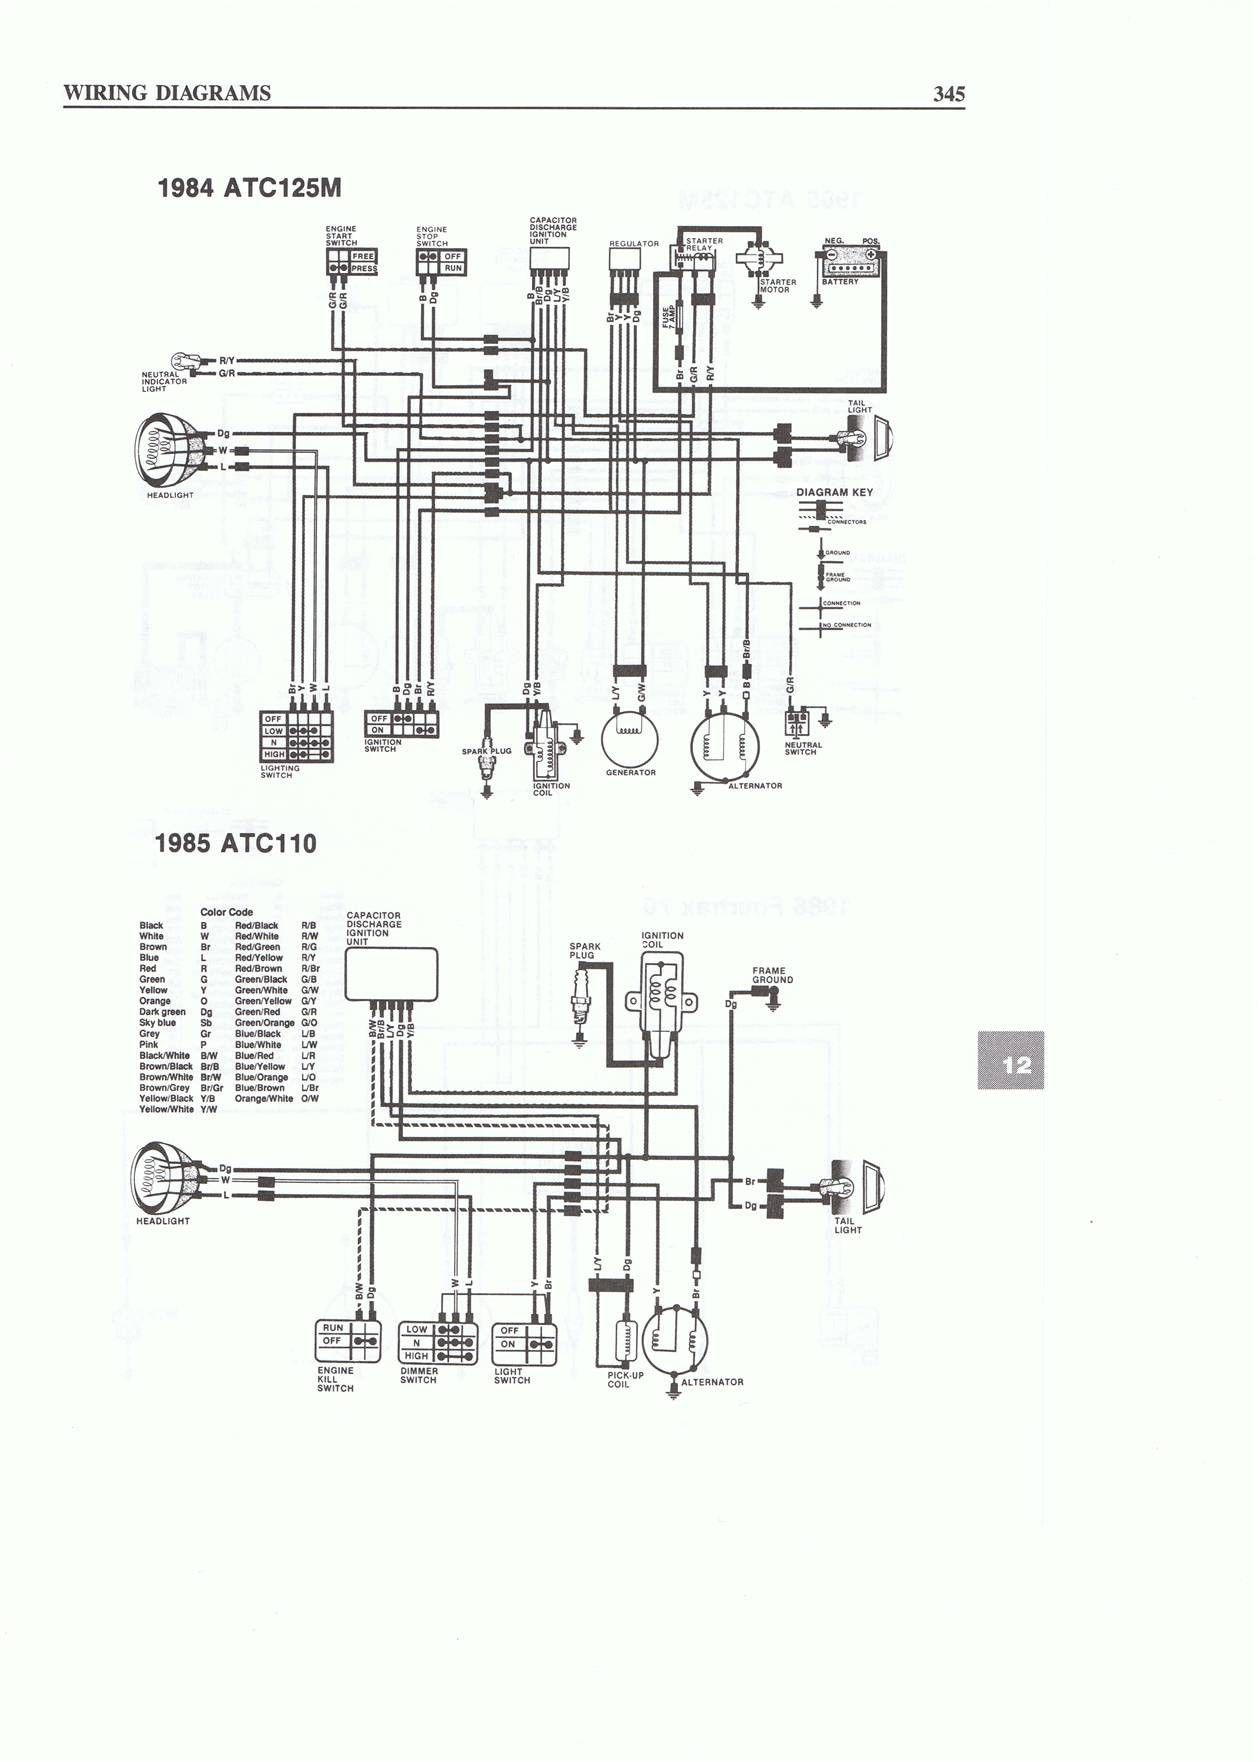 Peugeot 206 Speaker Wiring Diagram Trusted Diagrams 8 Ohm Series Parallel Chinese Quad Unique Image Crutchfield Guitar